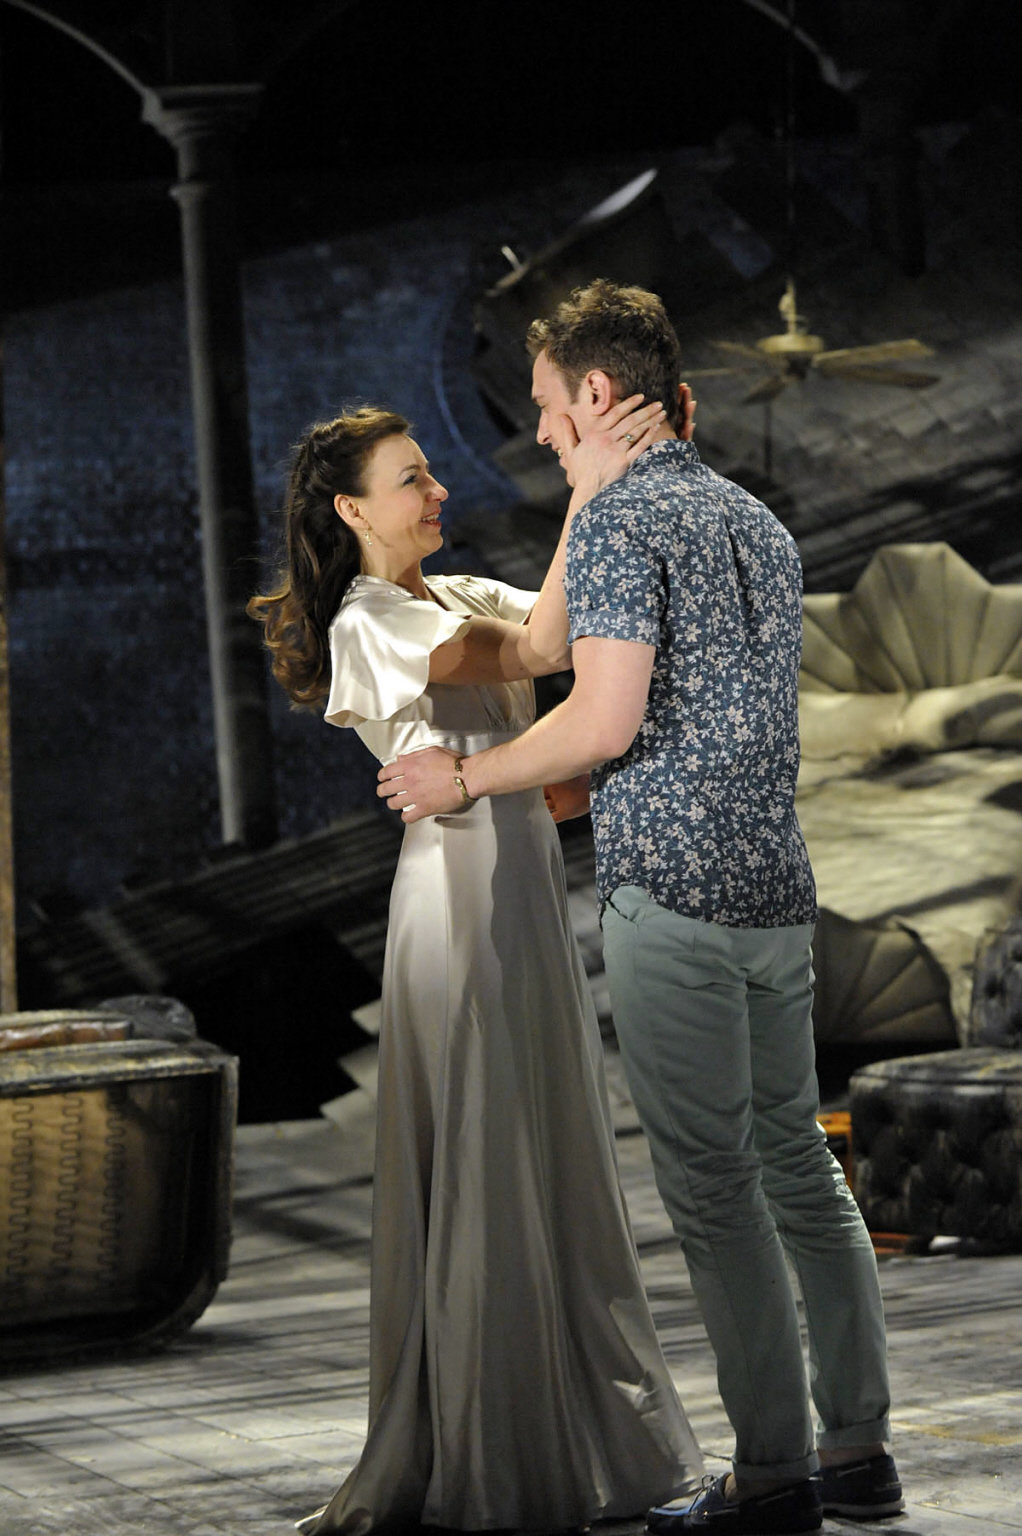 Sebastian dressed in a blue shirt and Olivia in a white silk dress look at each other in the 2012 production of Twelfth Night.